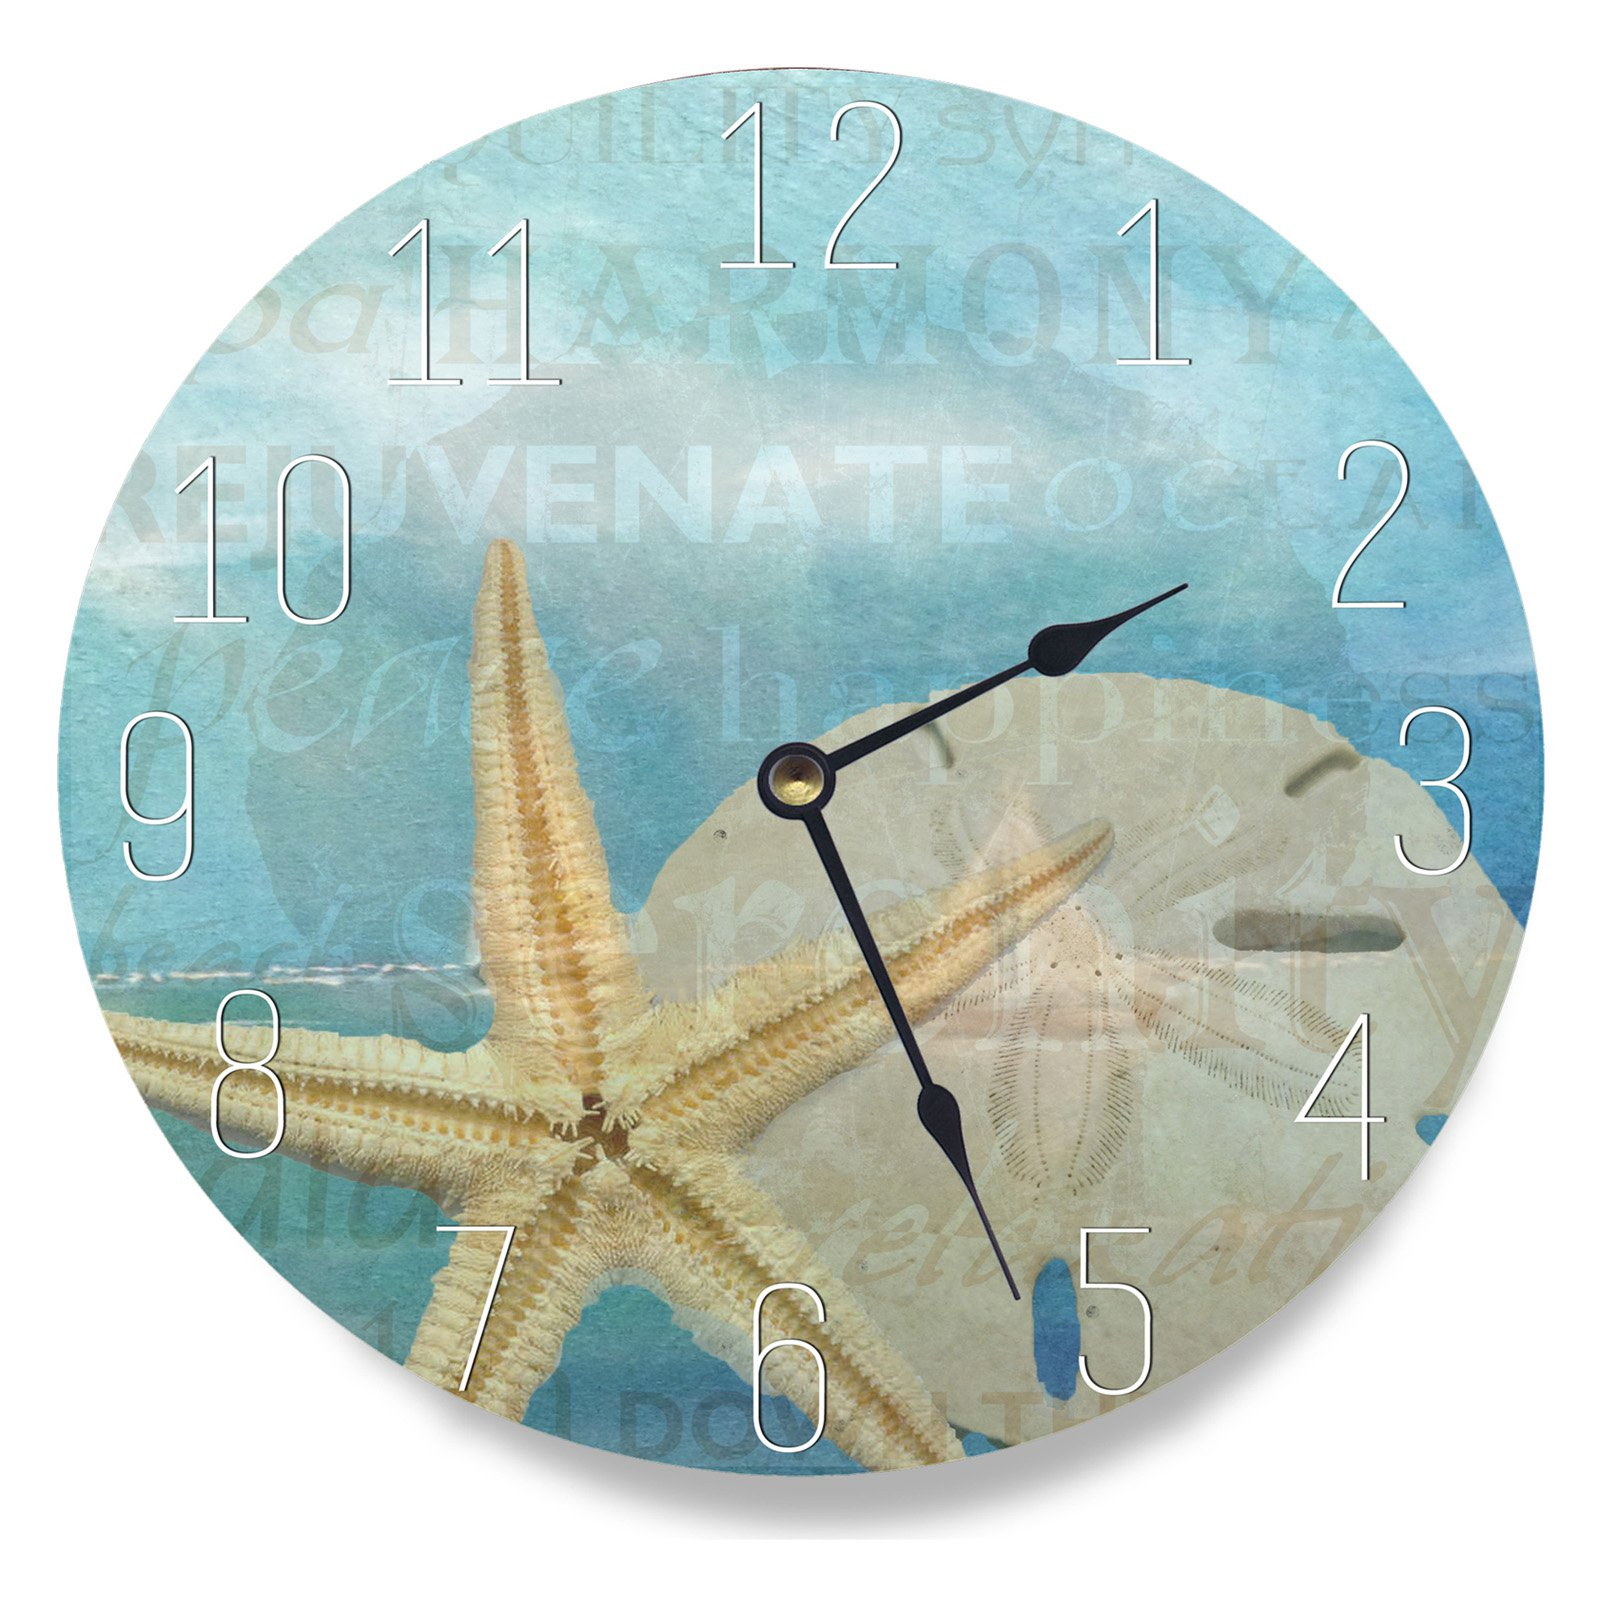 Decorative Wall Clock decorative wall clock